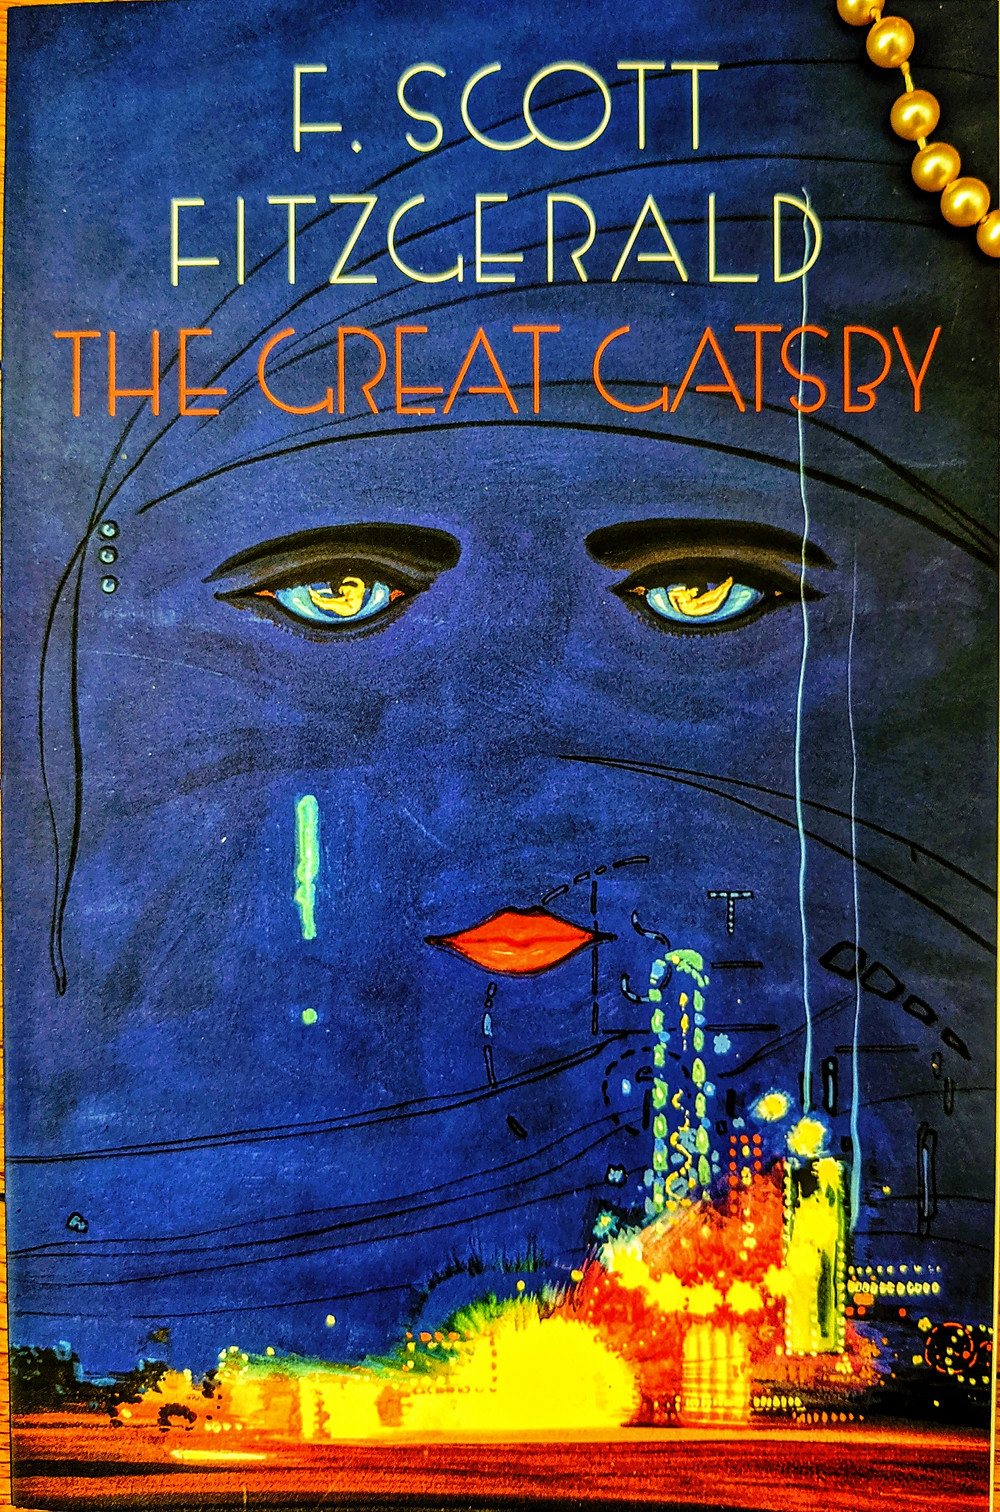 picture-of-a-book-cover-from-The-Great-Gatsby-with-a-face-and-glitzy-city-lights